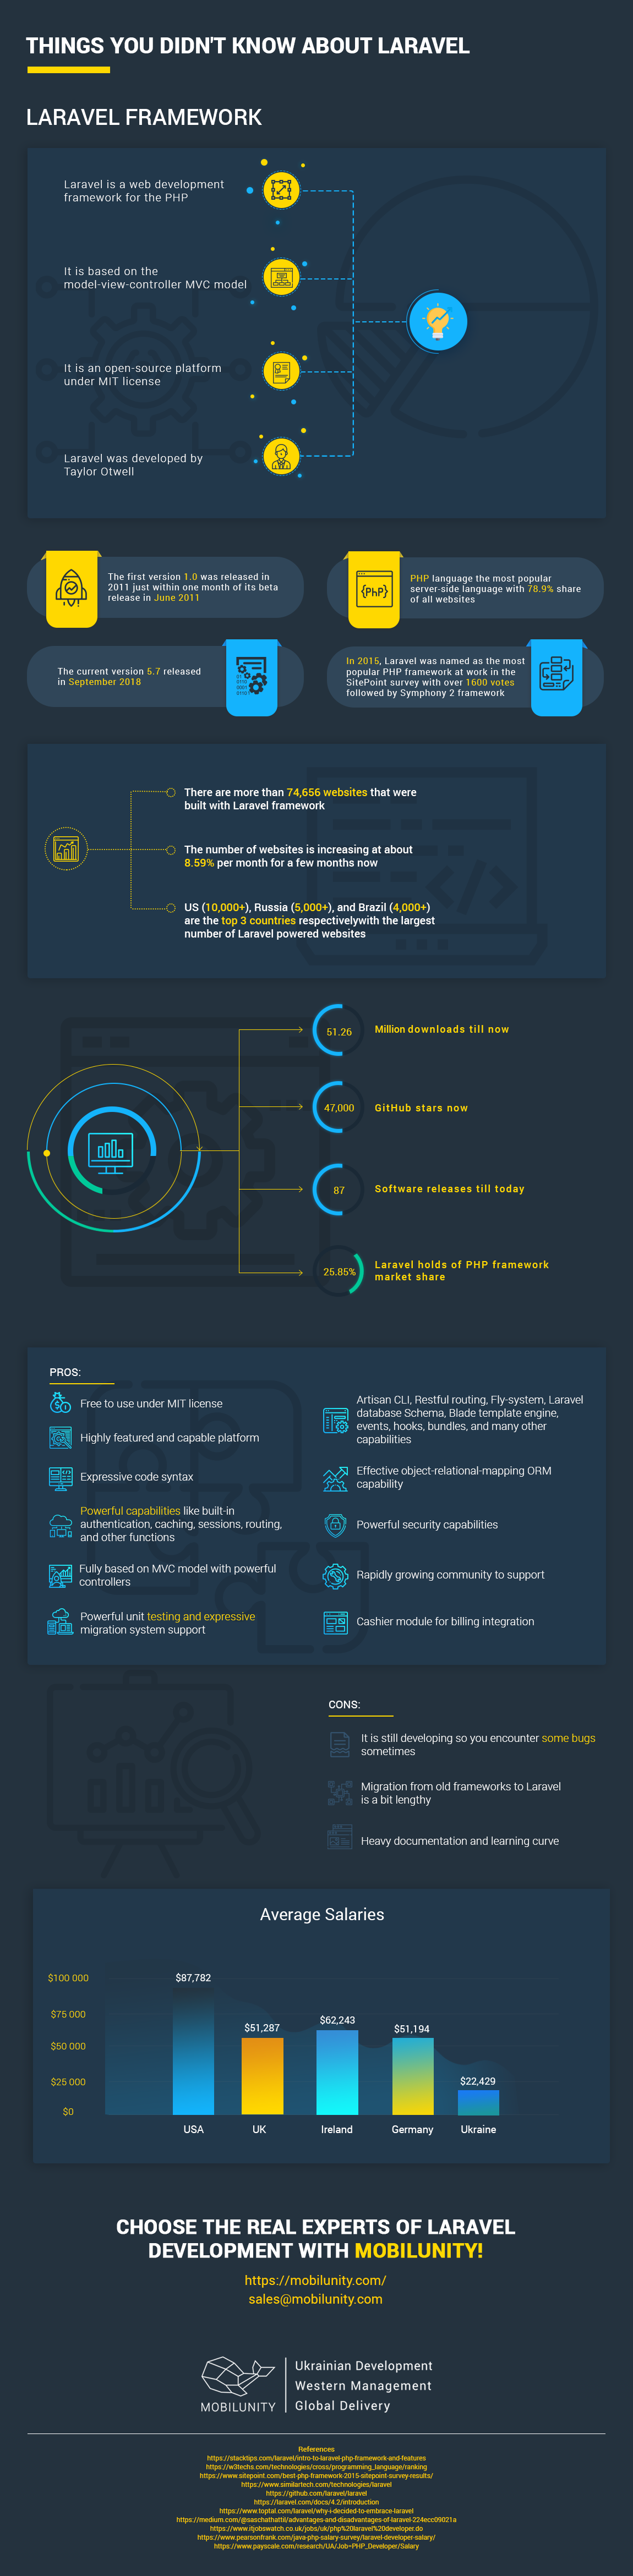 Things You Didn't Know About Laravel Infographic